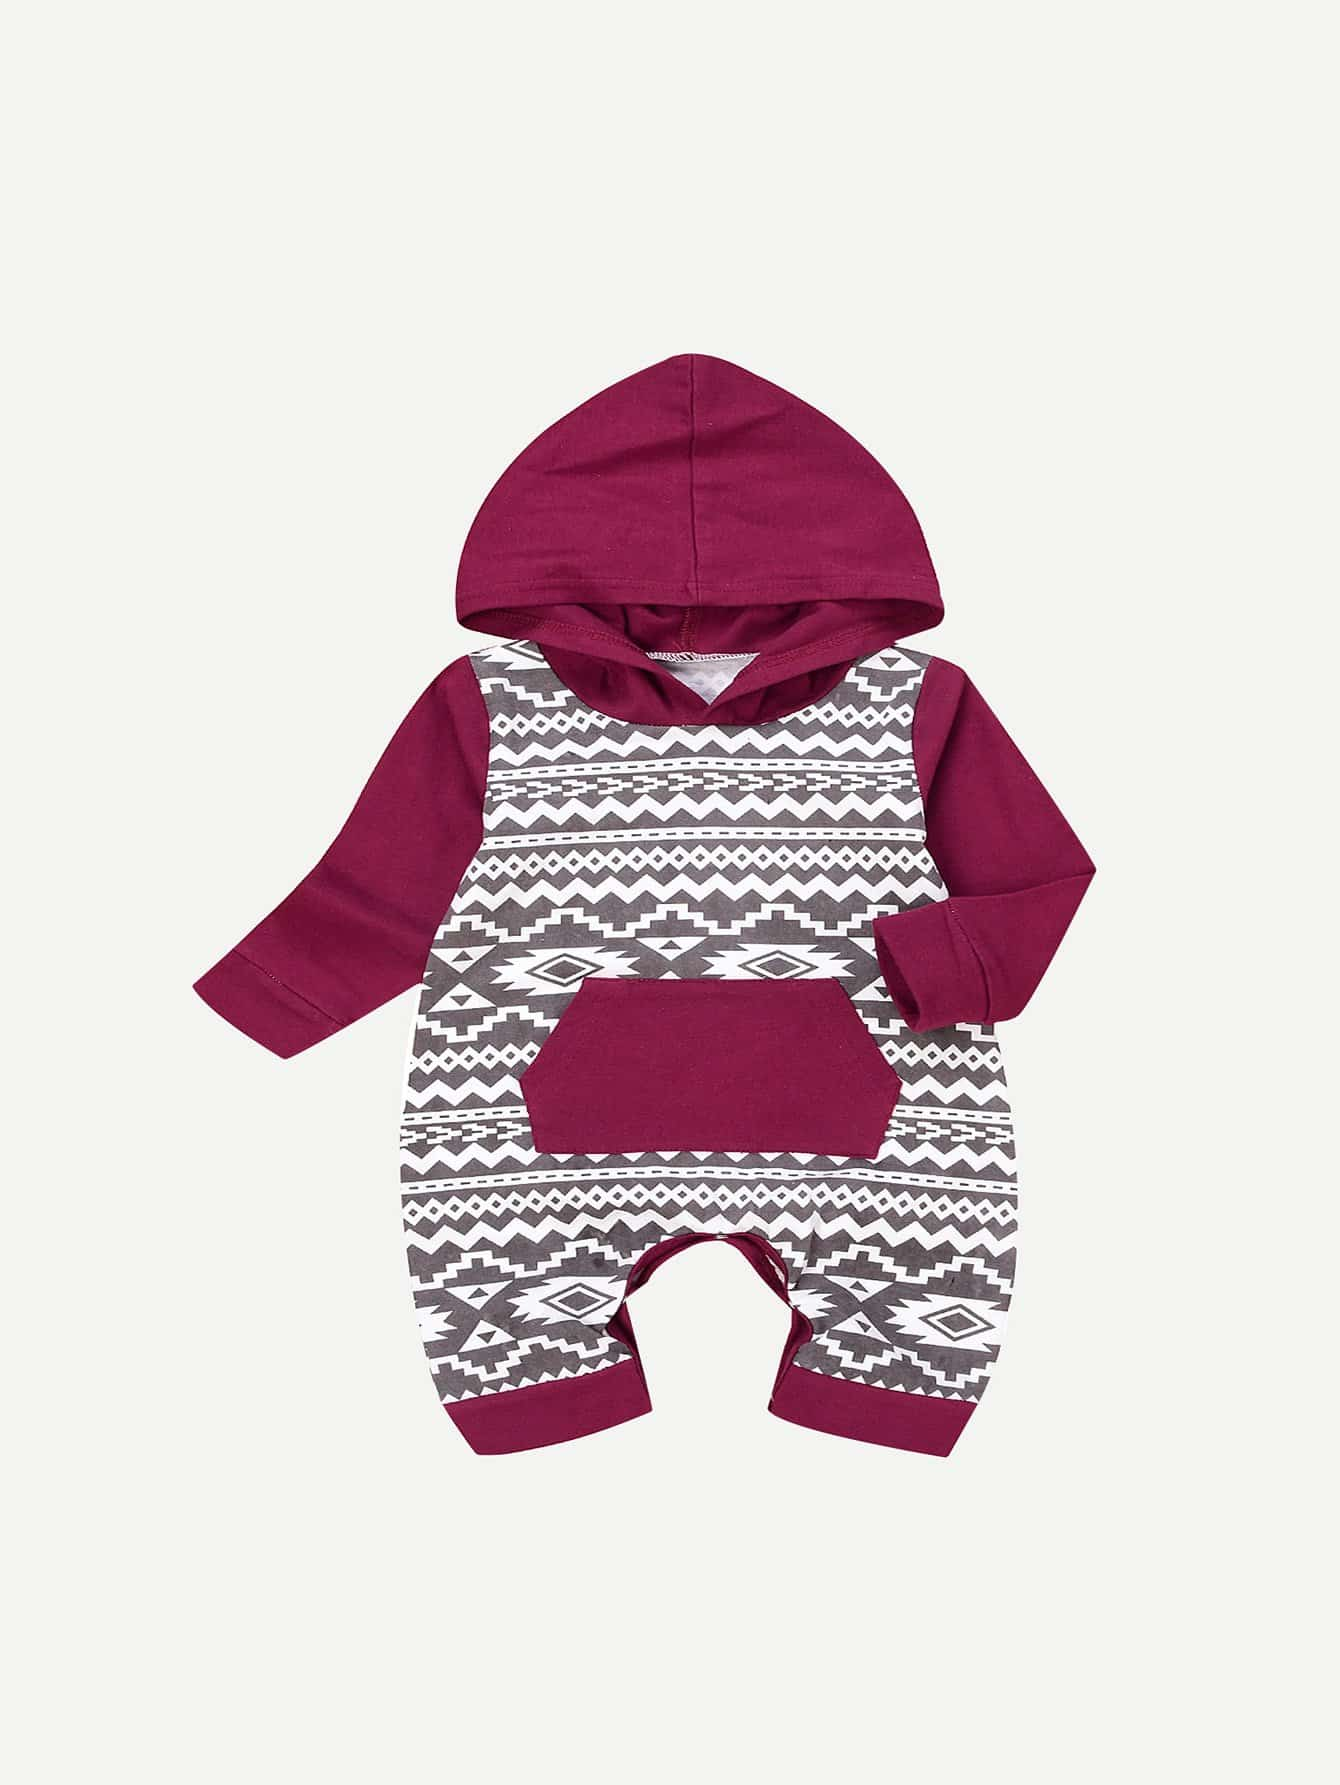 Girls Geometric Print Hooded Jumpsuit newborn baby rompers clothes cotton ears hooded suits infant jumpsuit outwear animal lion baby boys girls jumpsuit clothing